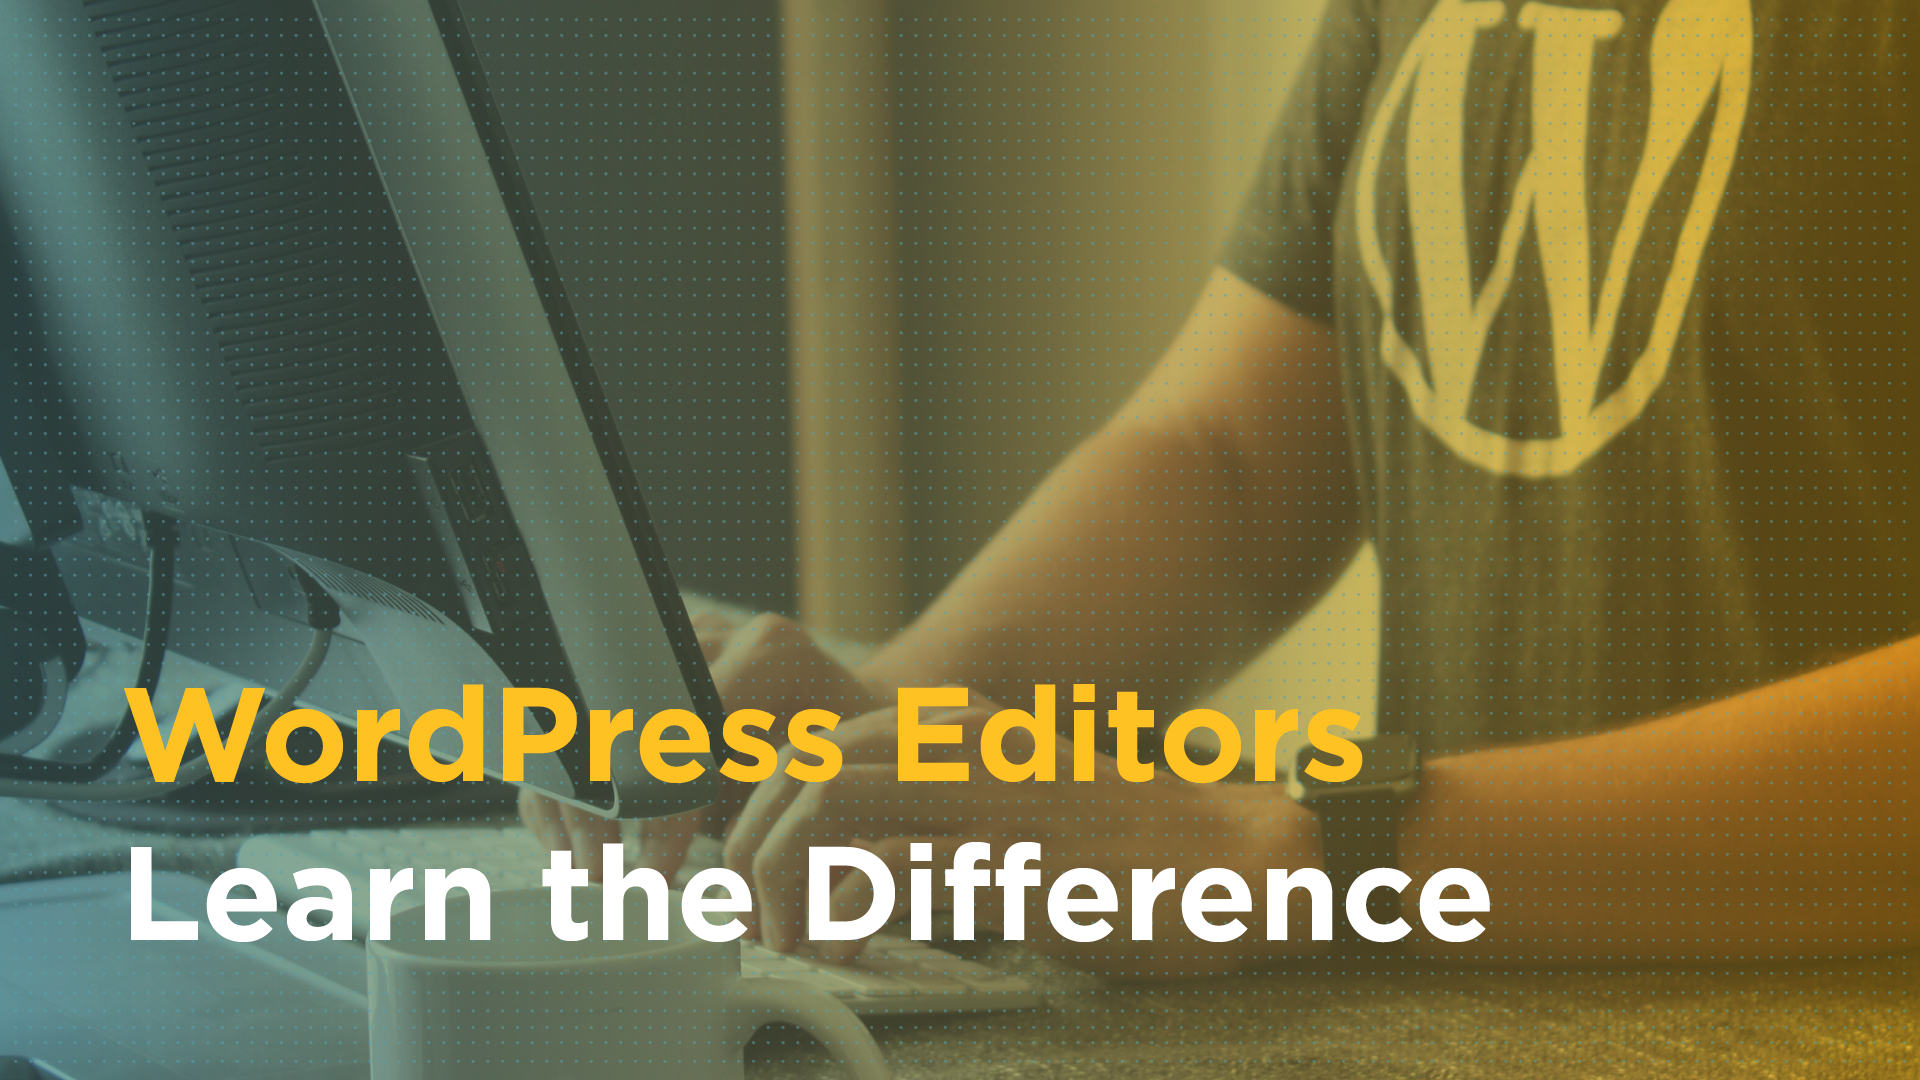 WordPress Editors: Learn the Difference Between Classic, Gutenberg and Page Builders Featured Image